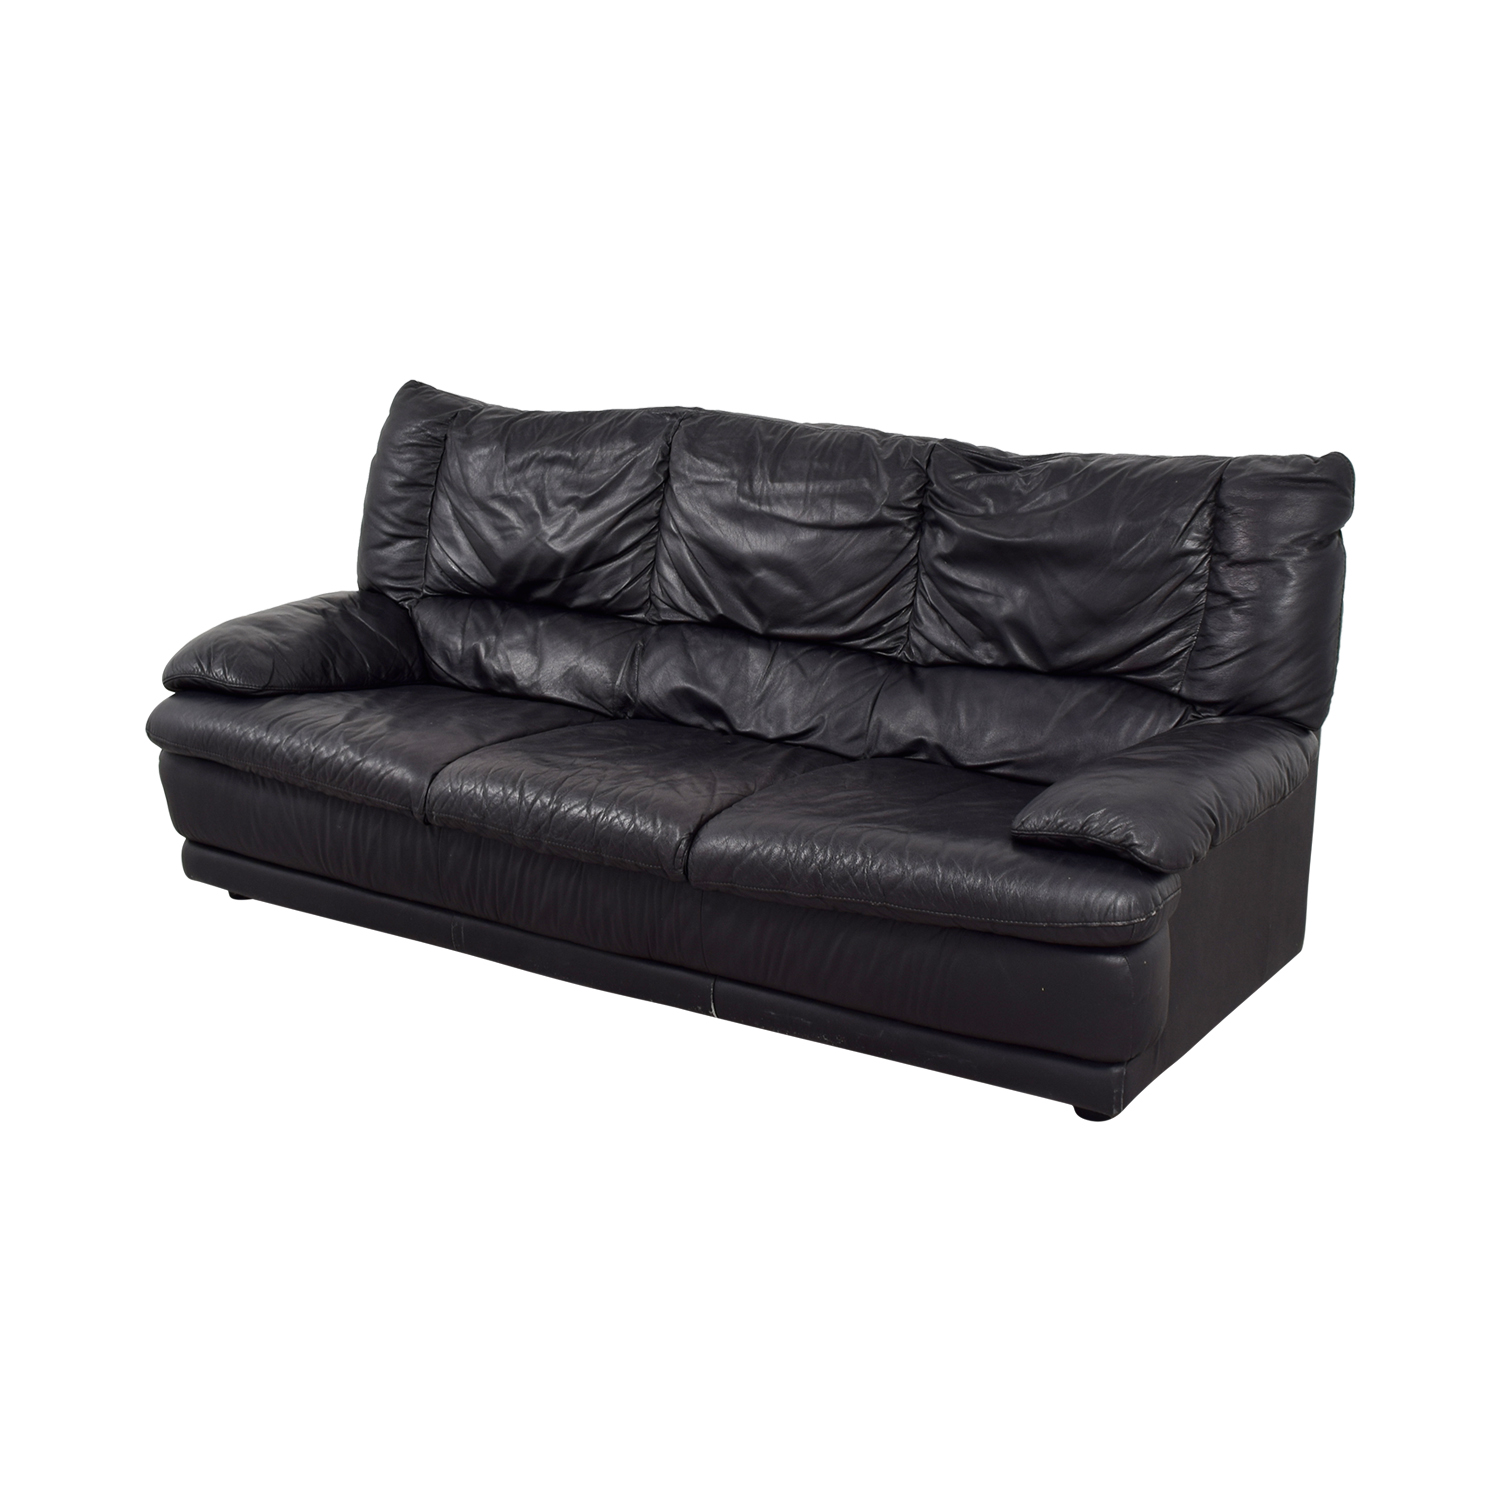 ... Shop IKEA IKEA Black Leather Sofa Online ...